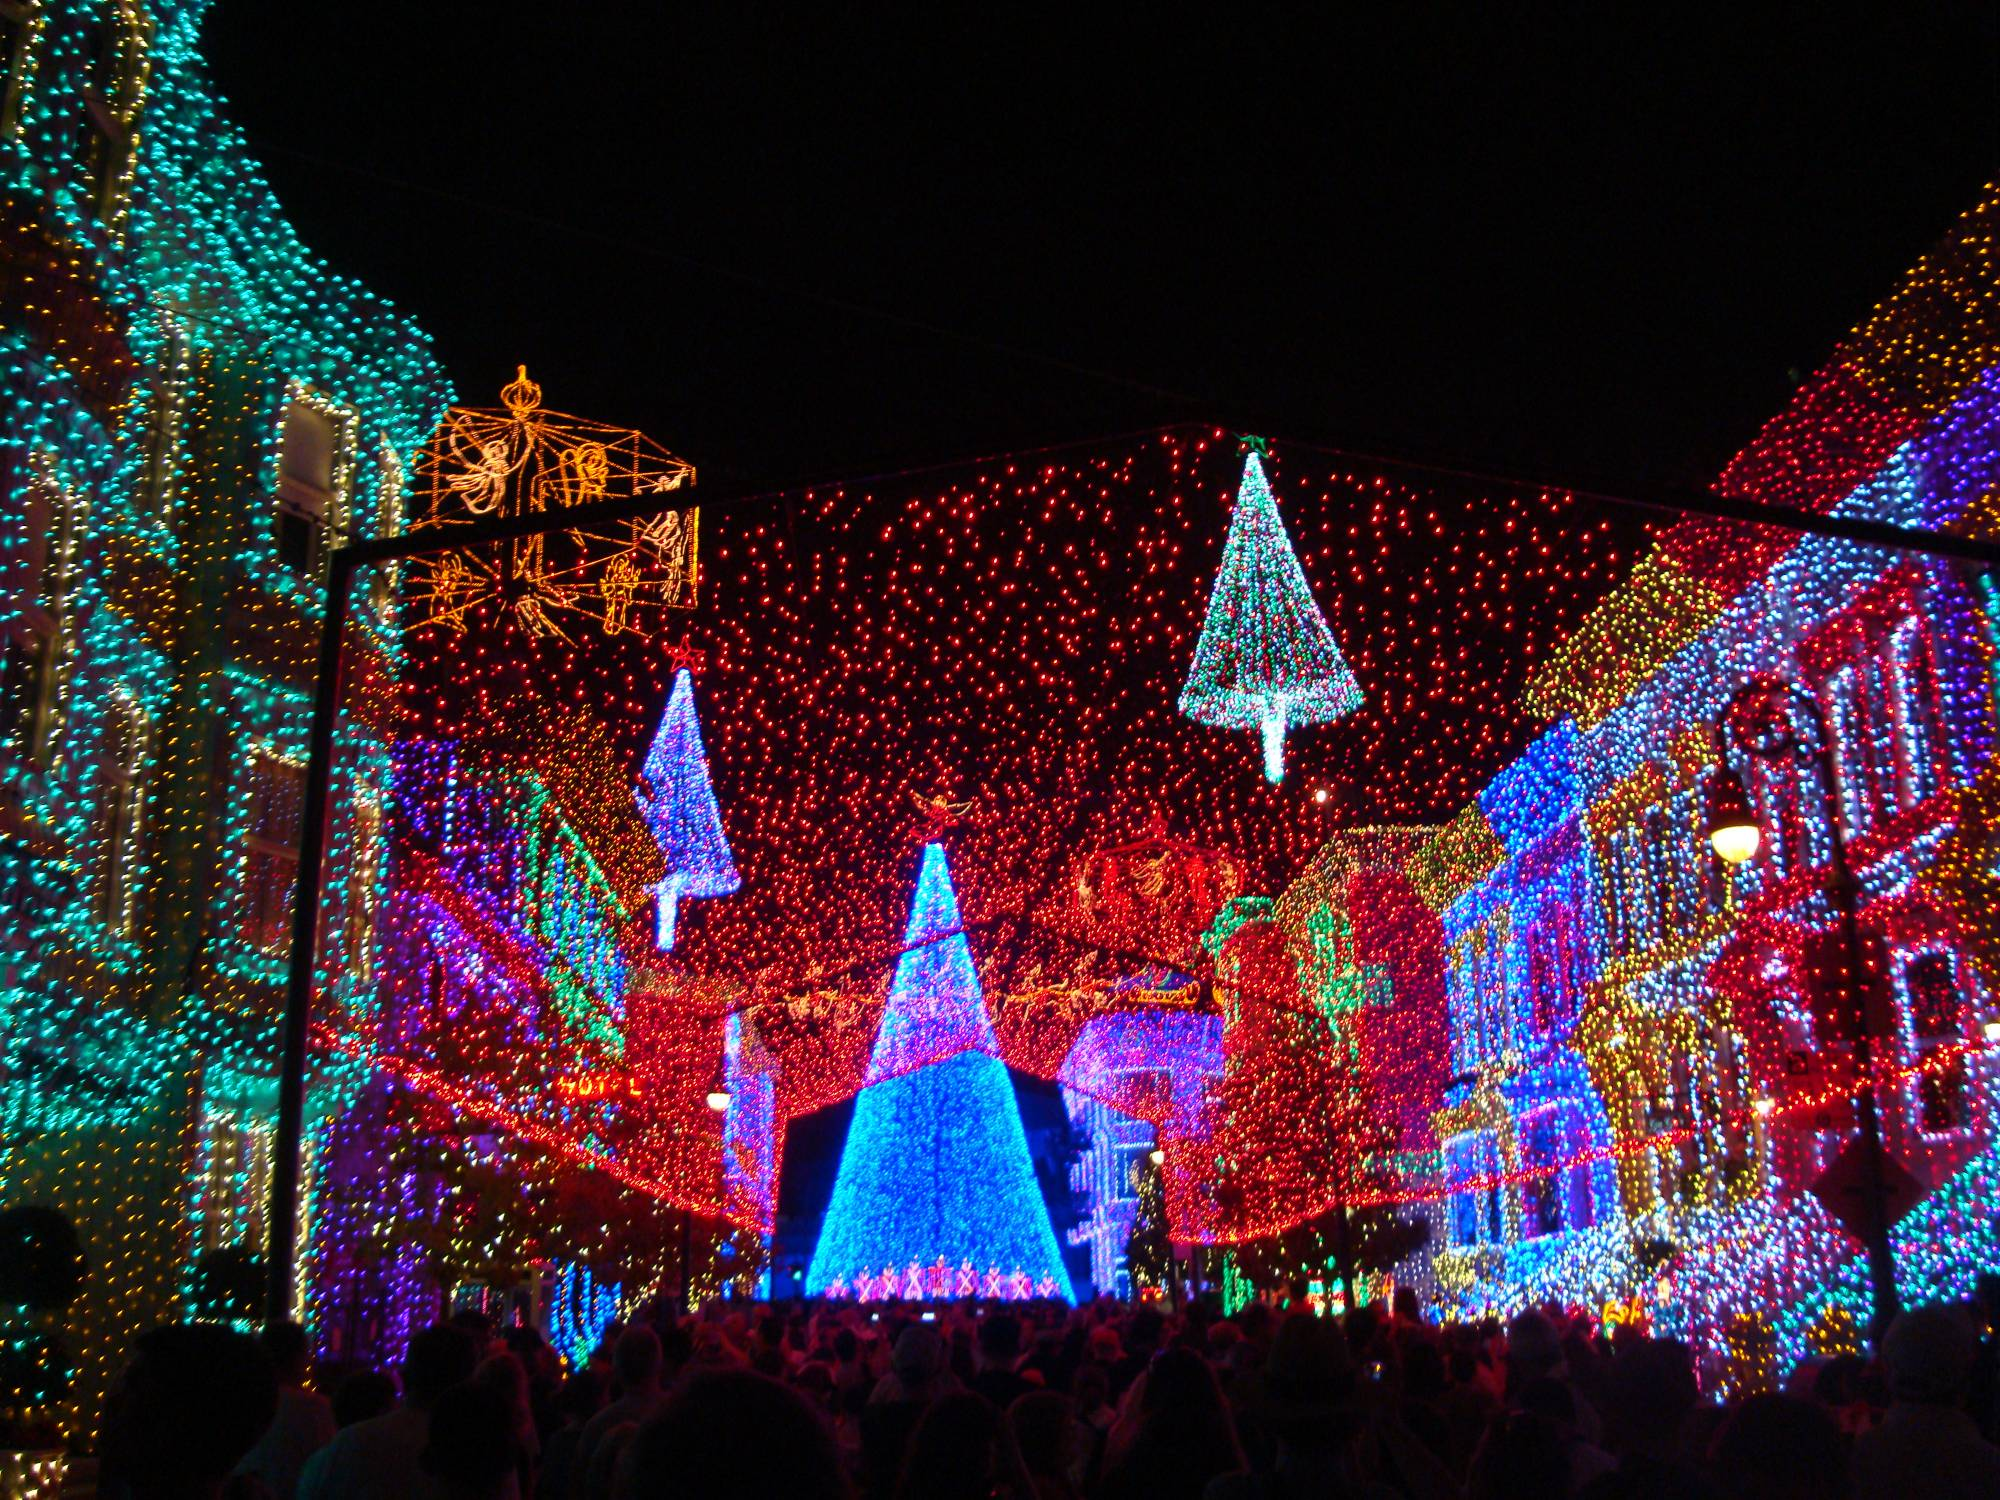 Discover the magic of Disney at the Holidays |PassPorter.com